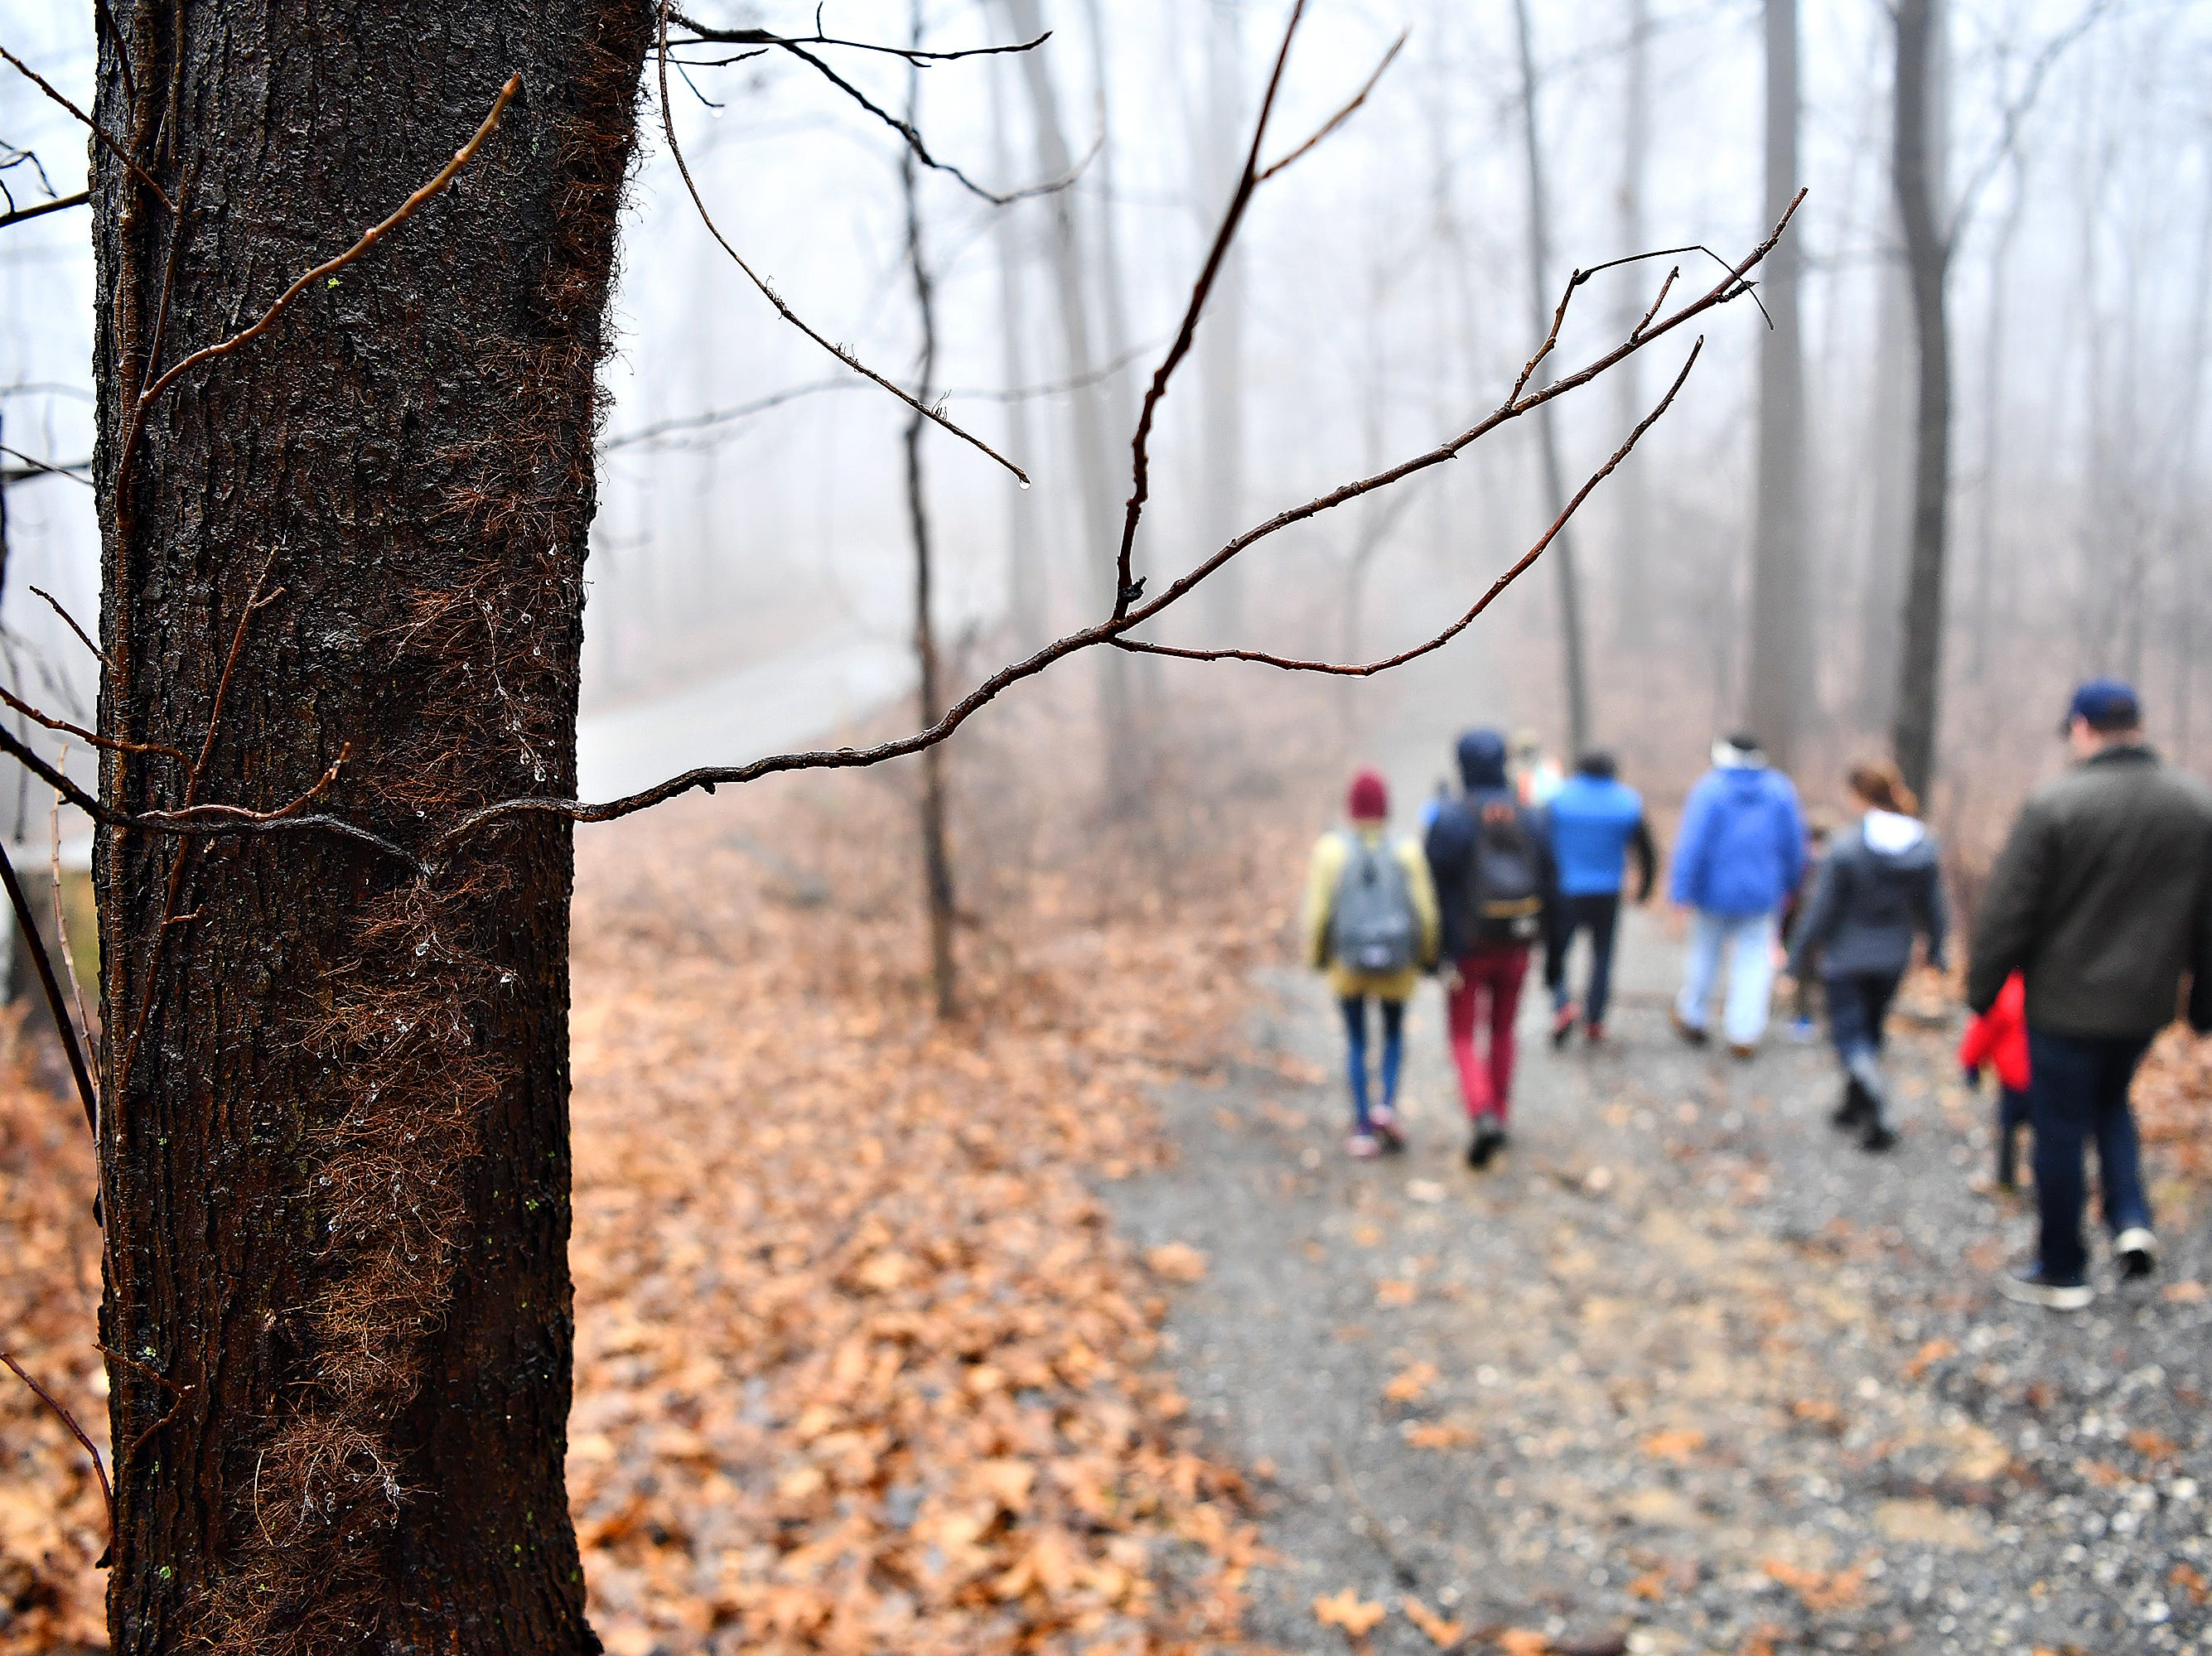 Poison Ivy vine and branches are seen on a tree during a Marshmallow Hike at Rocky Ridge Park in Springettsbury Township, Friday, Dec. 28, 2018. Dawn J. Sagert photo